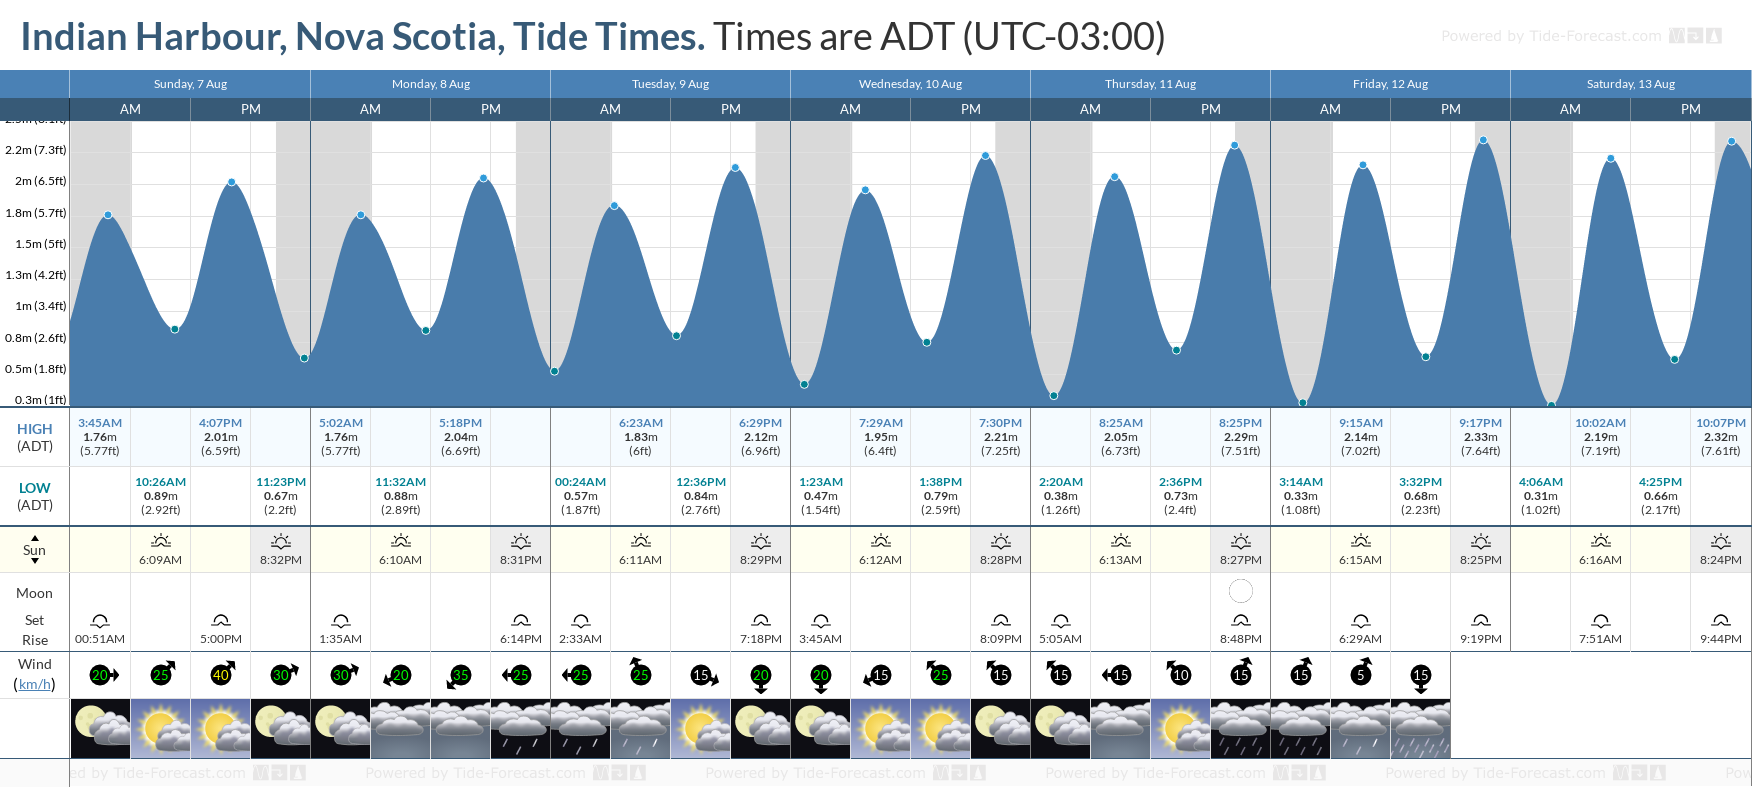 Indian Harbour, Nova Scotia Tide Chart including high and low tide tide times for the next 7 days